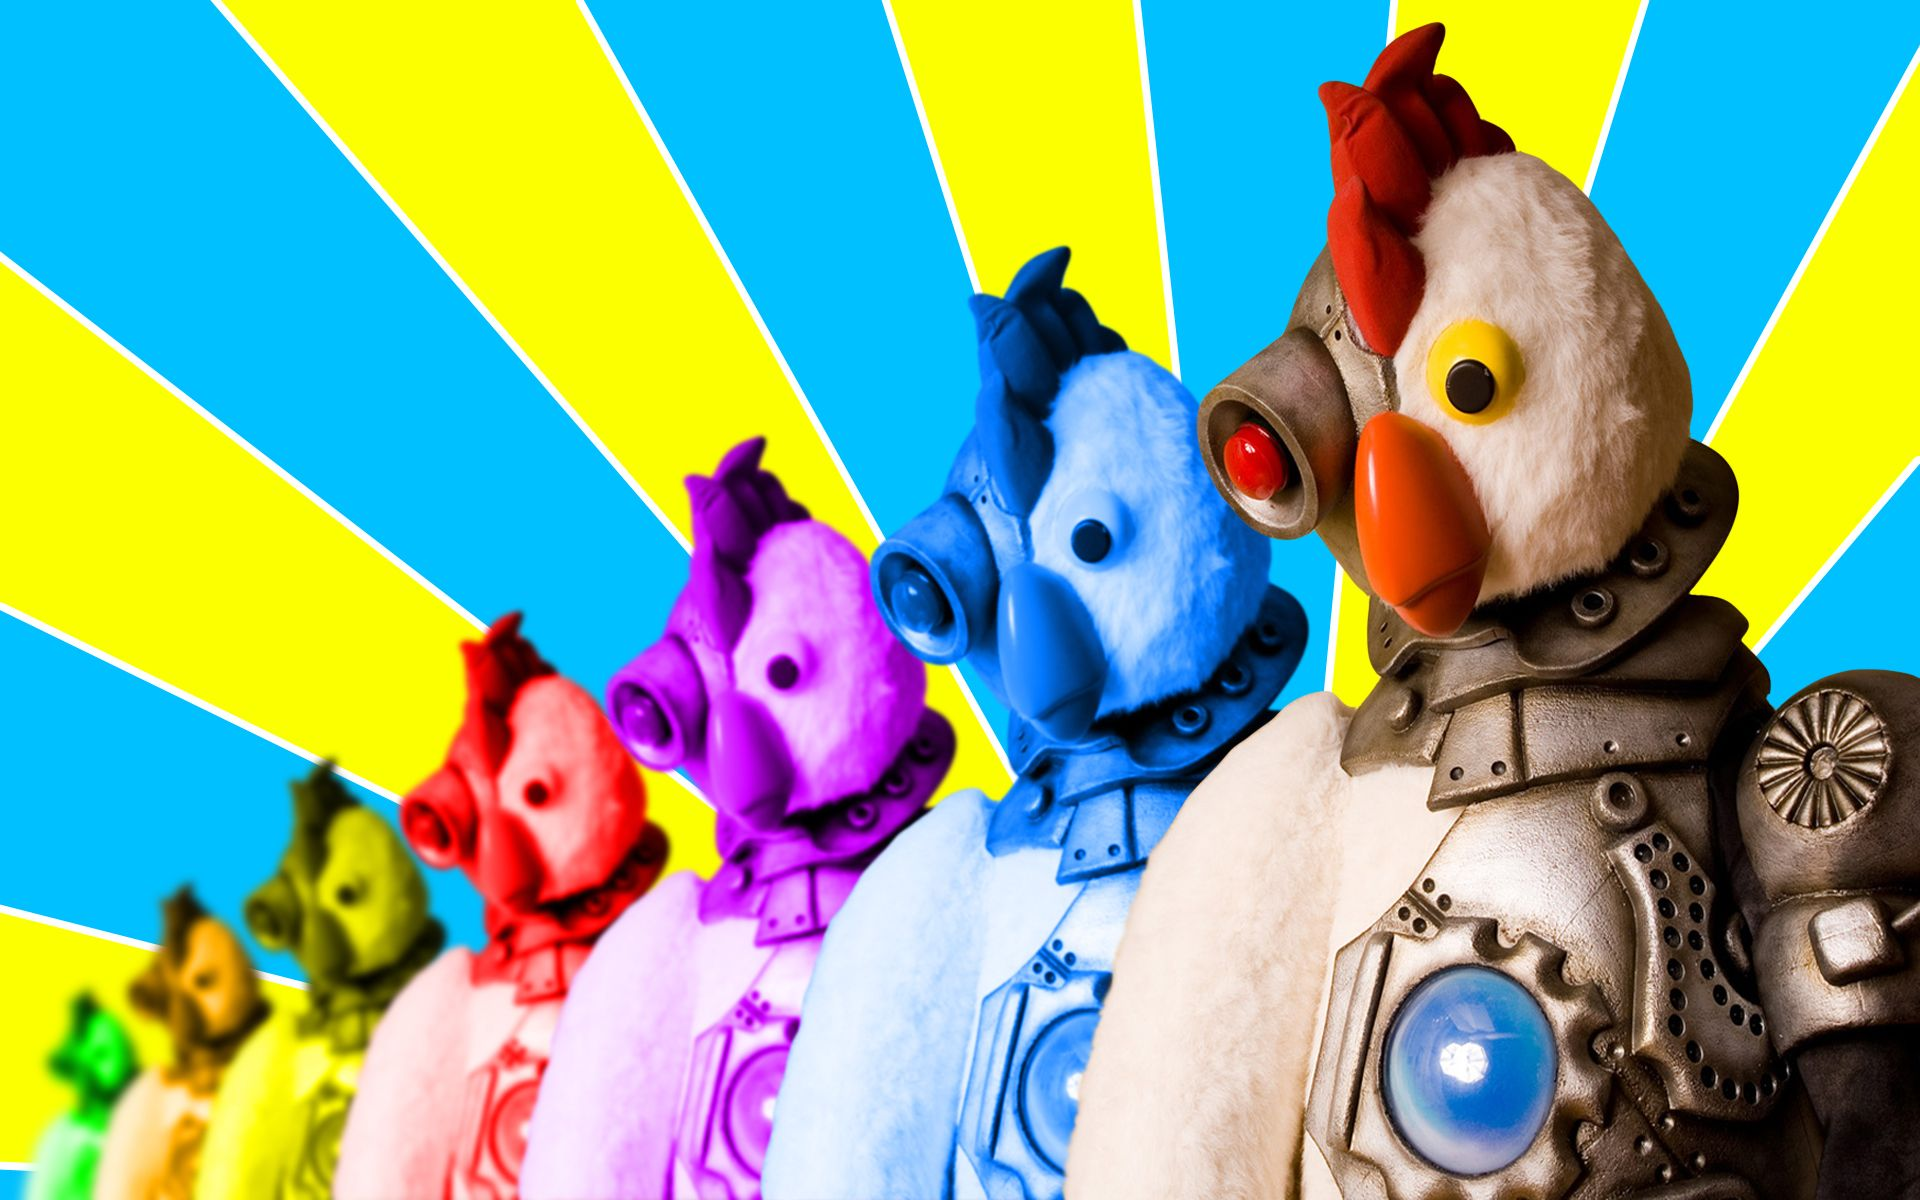 Home Browse All Warhol Robot Chicken Peripeteia Noun